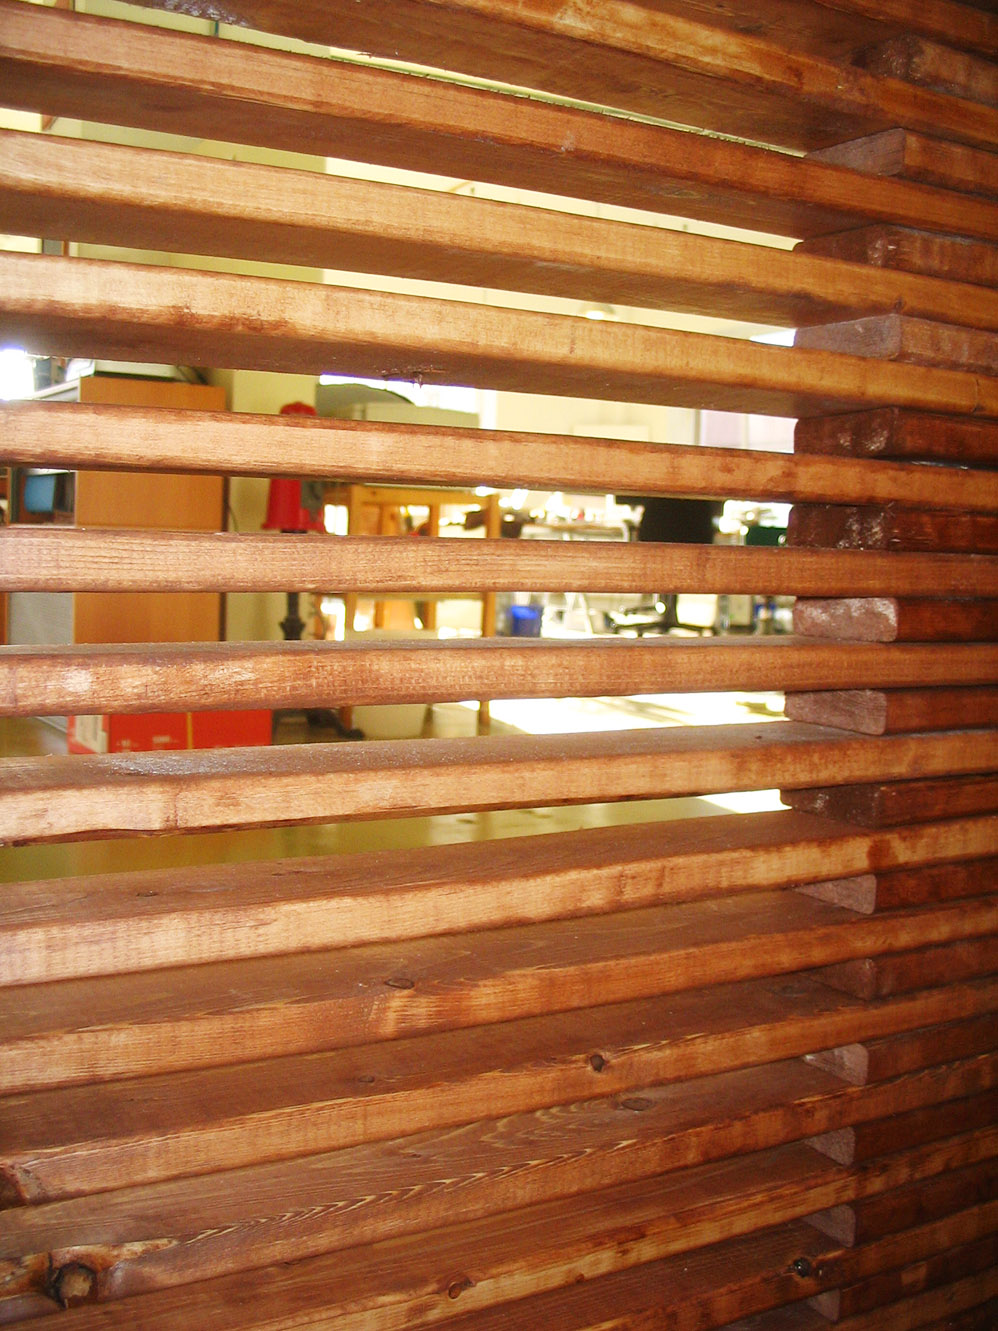 Wood wall design ideas – Factors to consider when putting up home and decor